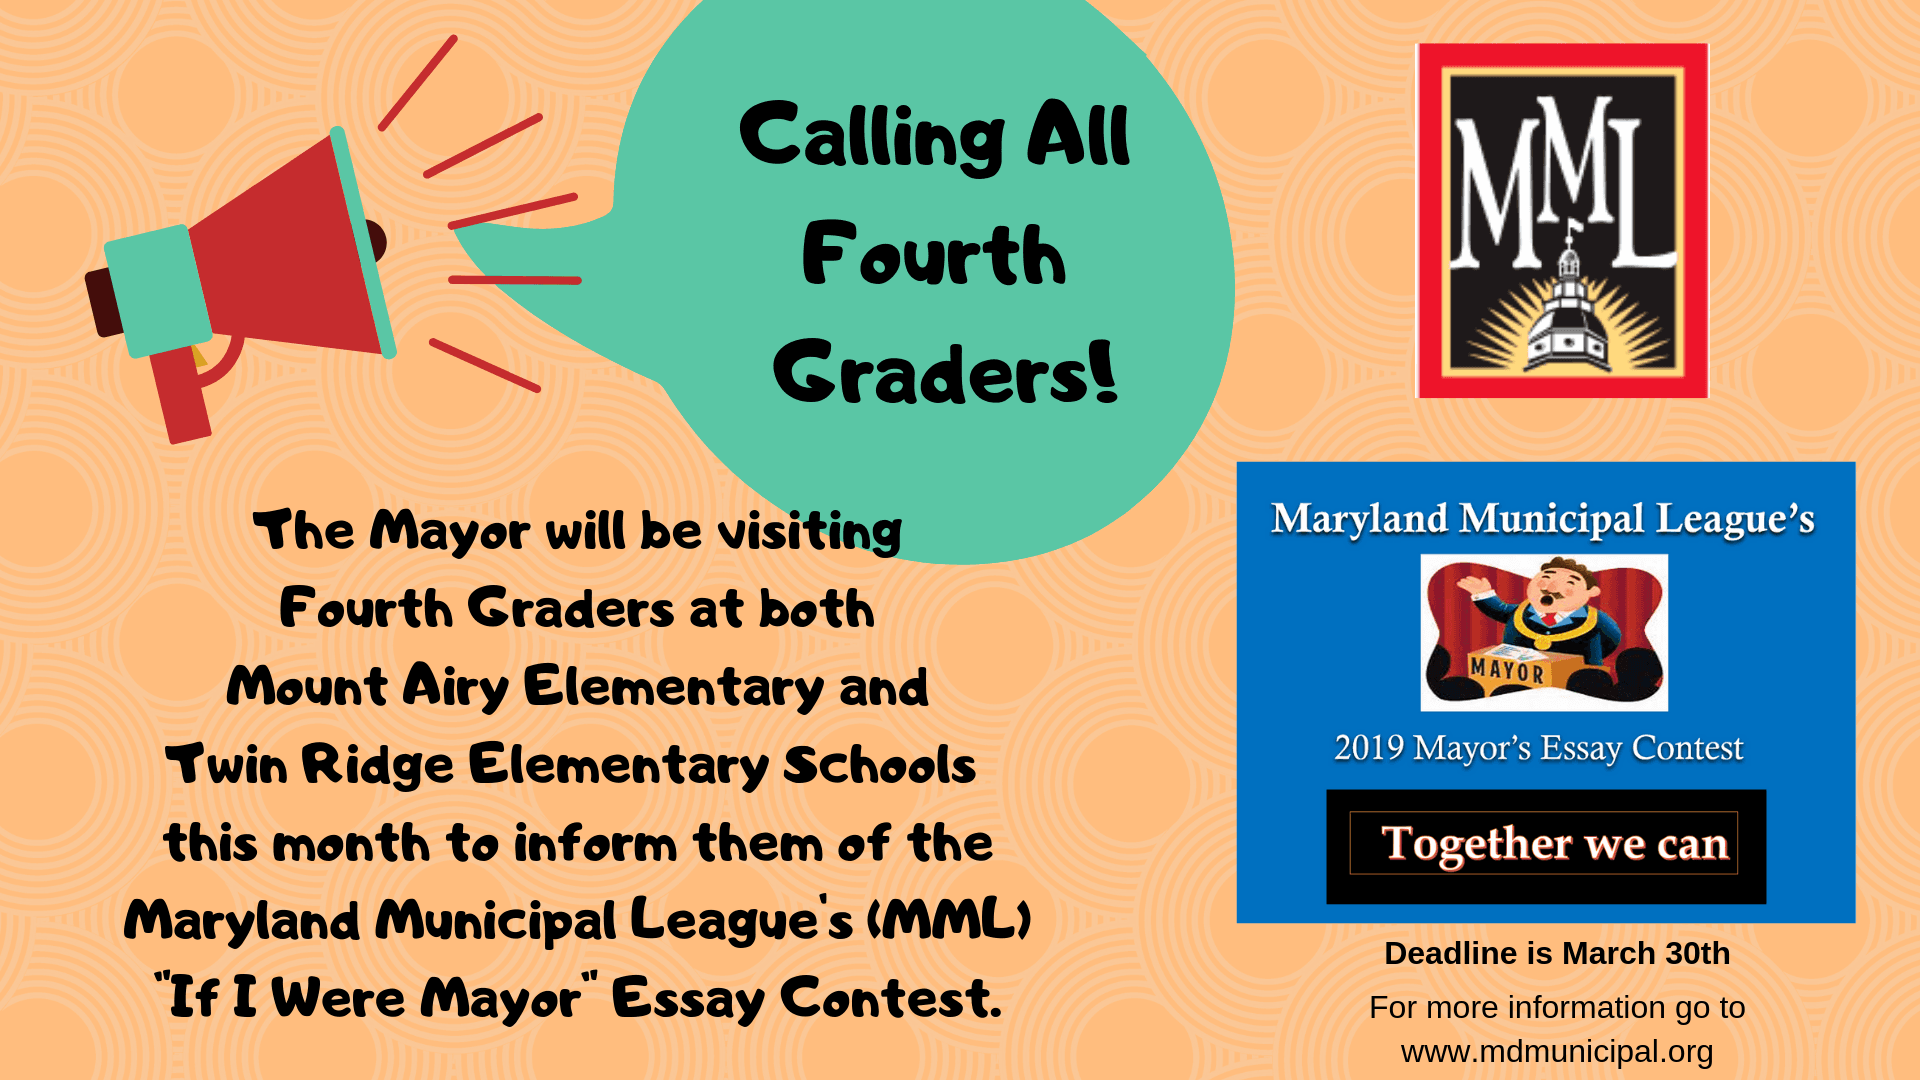 Calling All Fourth Graders!